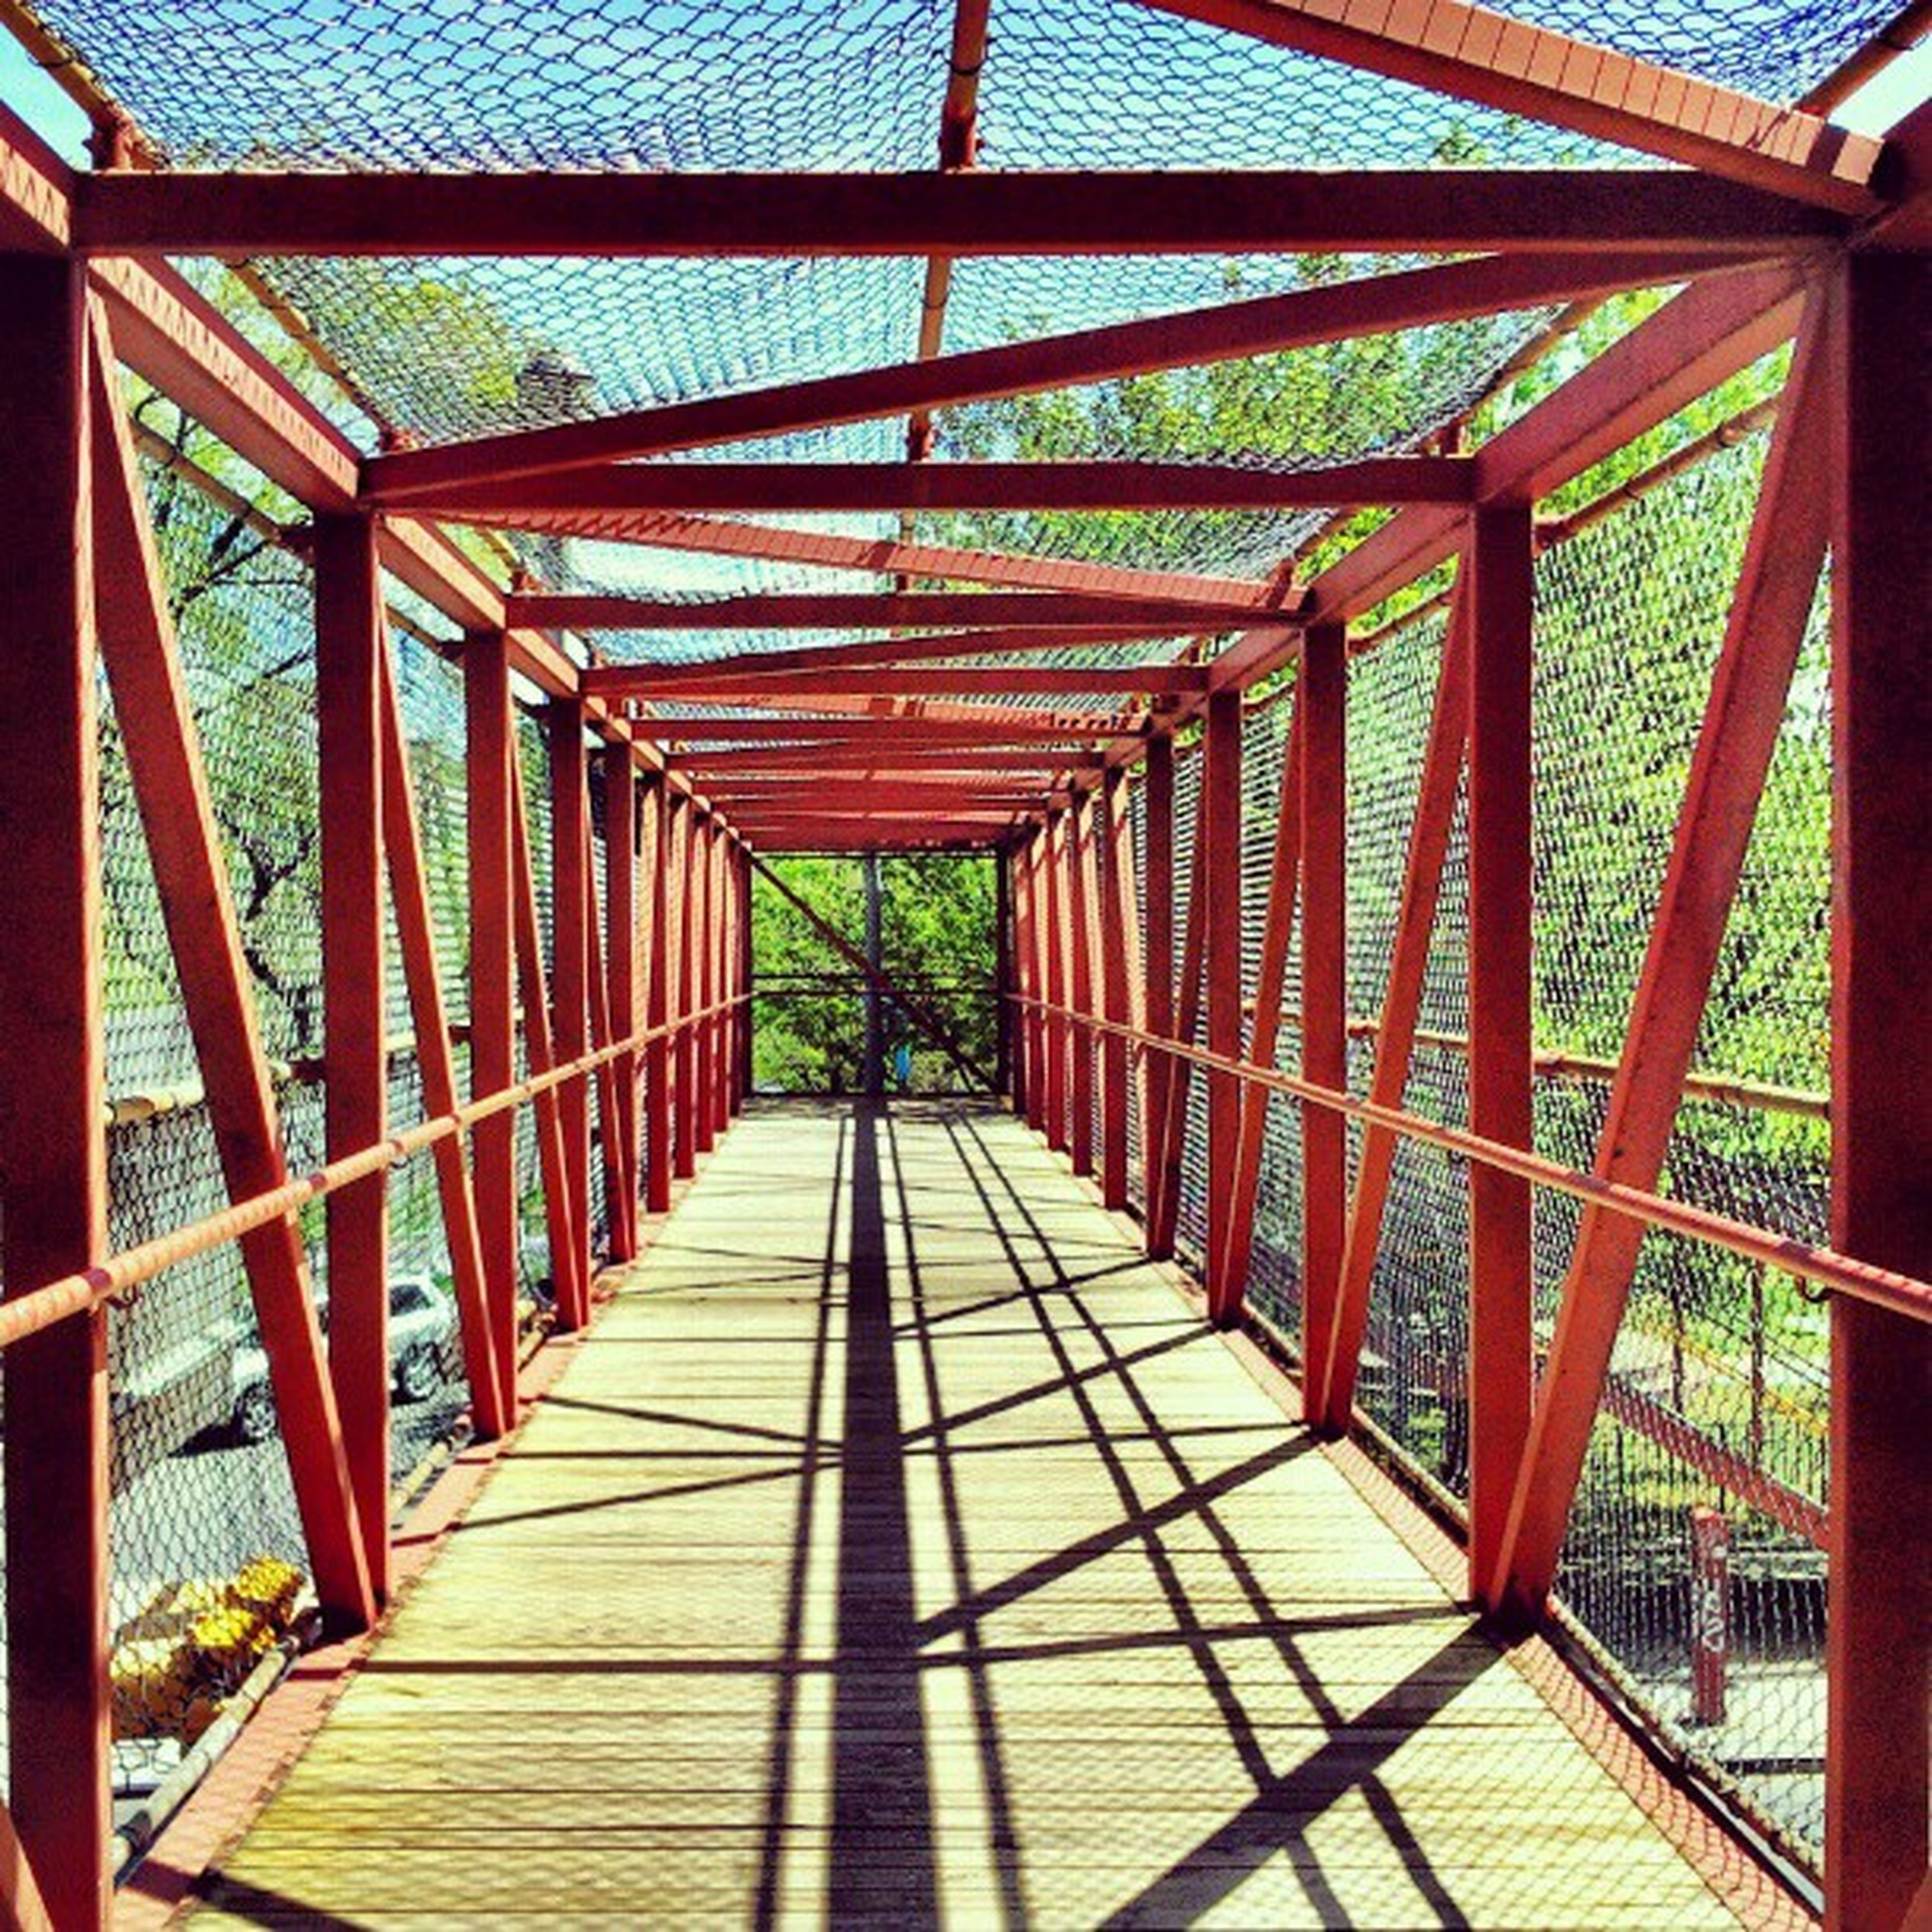 built structure, architecture, the way forward, railing, diminishing perspective, footbridge, bridge - man made structure, connection, vanishing point, metal, pattern, wood - material, day, sunlight, walkway, no people, indoors, engineering, shadow